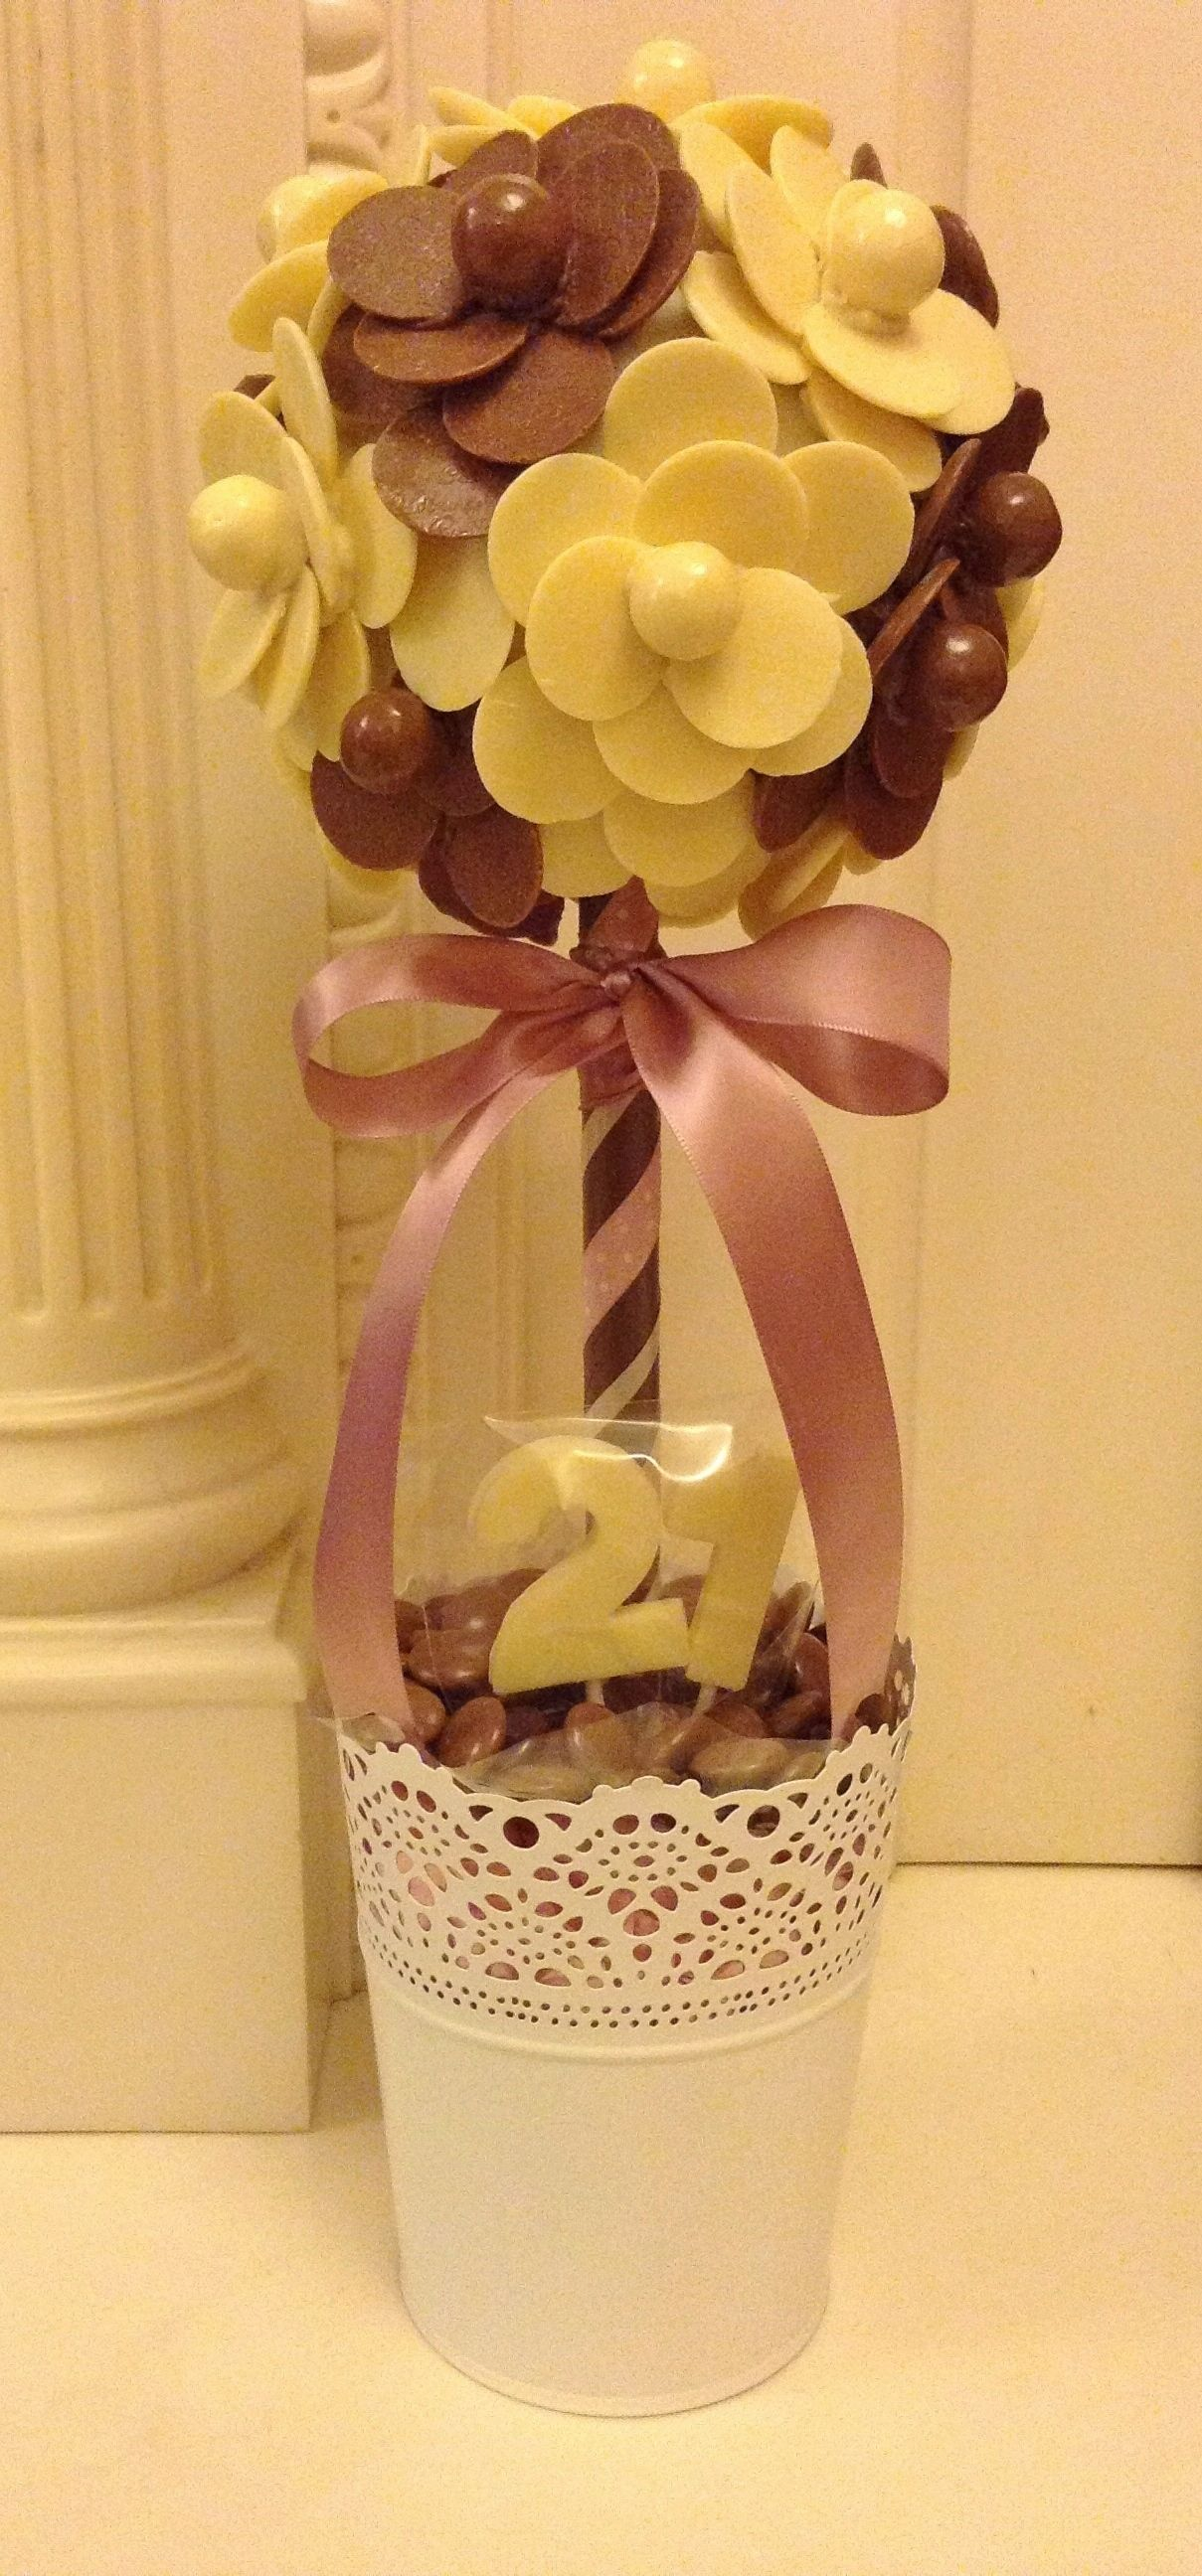 Chocolate bouquet candy tree candytreescambridge chocolate bouquet candy tree candytreescambridge izmirmasajfo